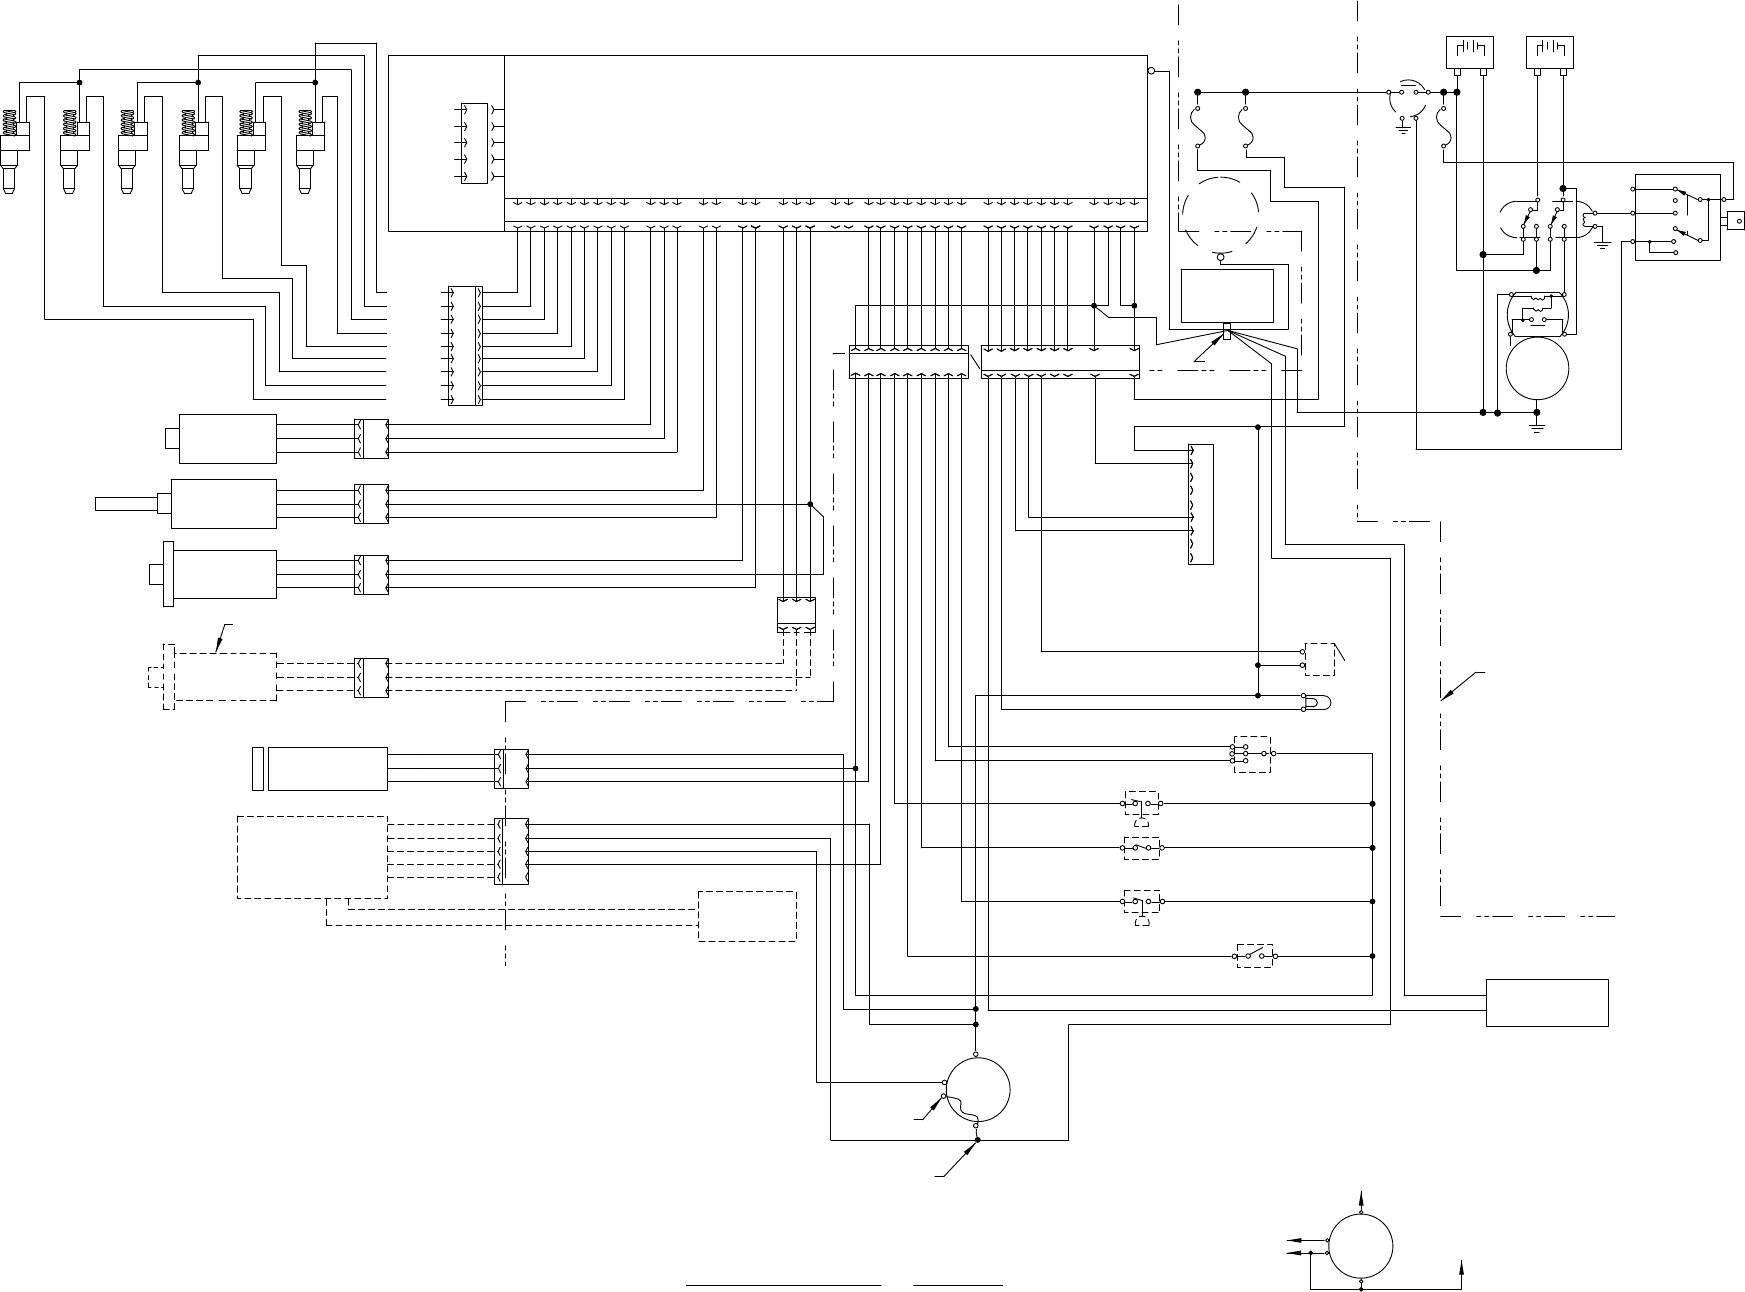 3176 truck engine electrical schematic